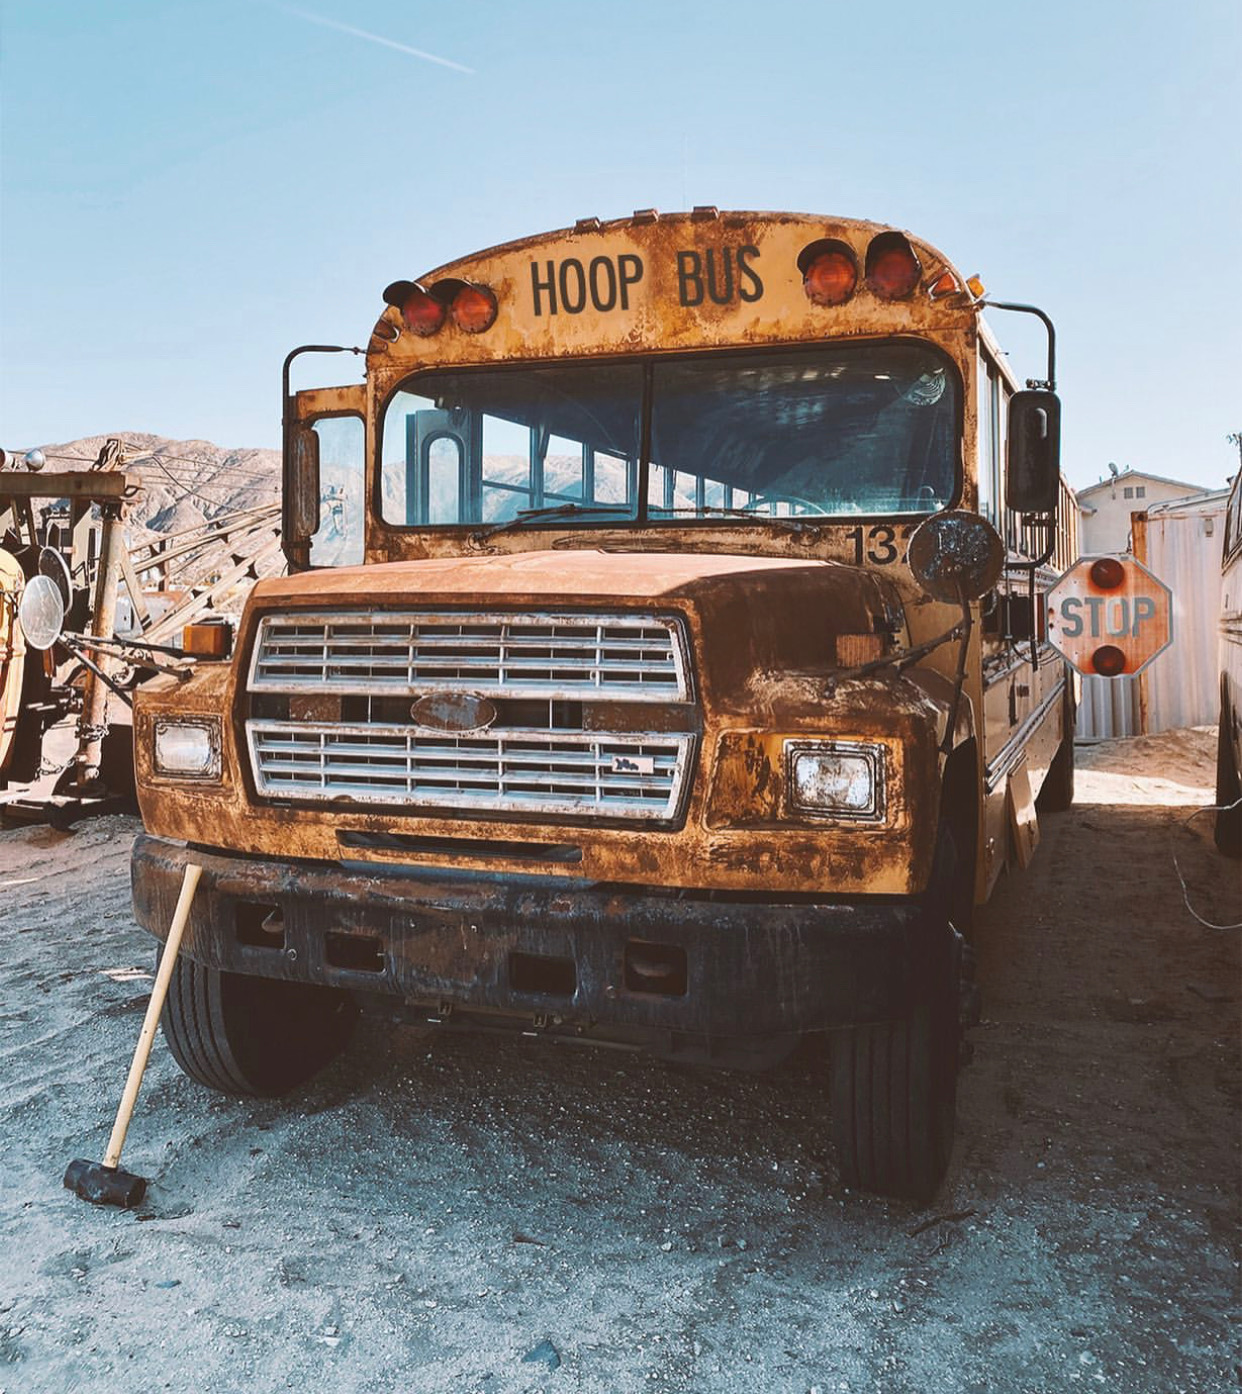 Hoop Bus: The First Ride